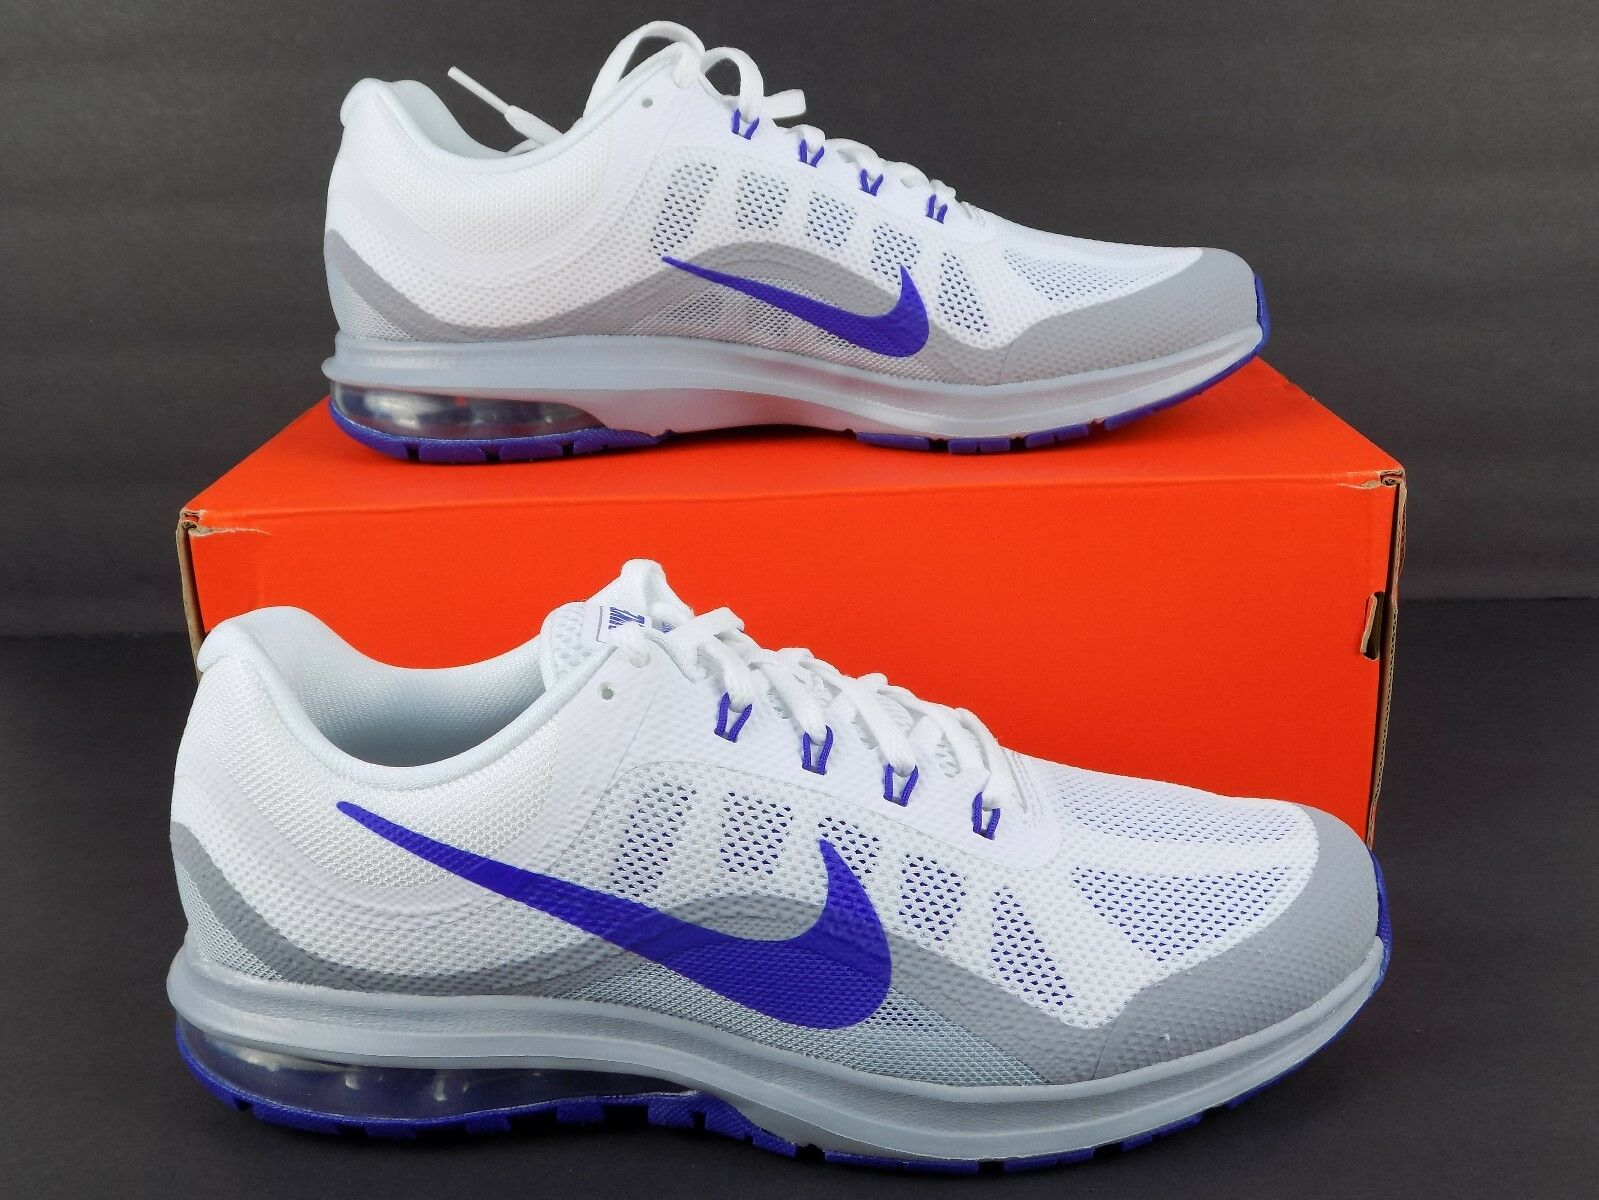 c56c3751f3 Nike Mens Air Max Dynasty 2 Running shoes Sz 10 NEW 852430-104 White ...